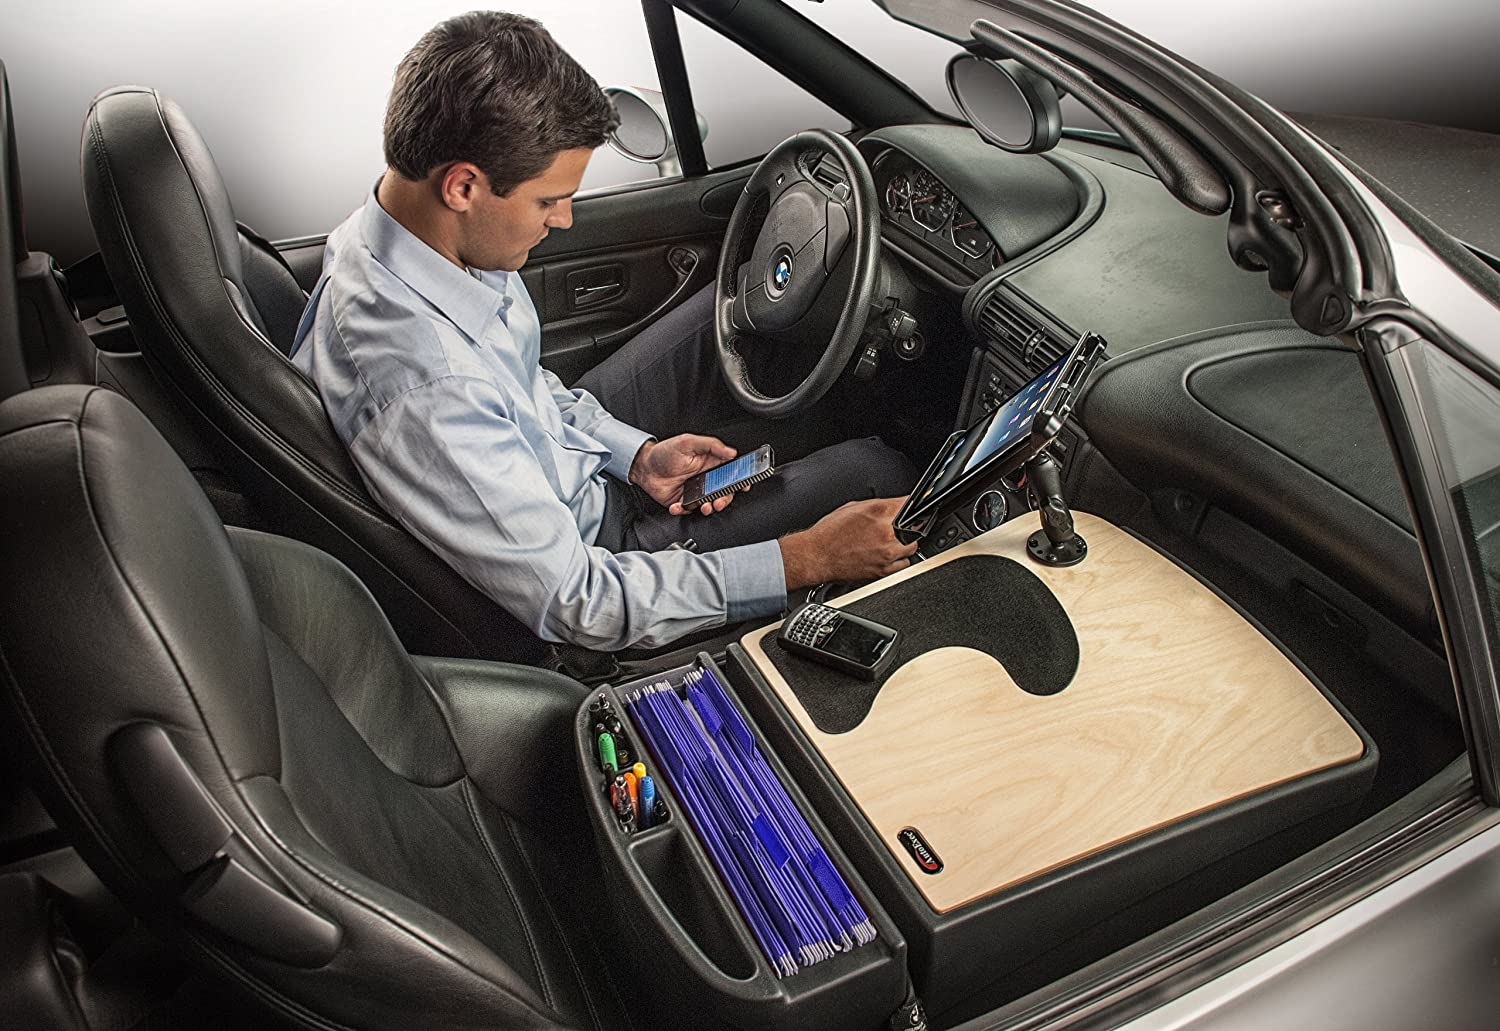 AutoExec AUE10023 GripMaster Car Desk Mahogany Finish with Built-in Power Inverter and iPad//Tablet Mount